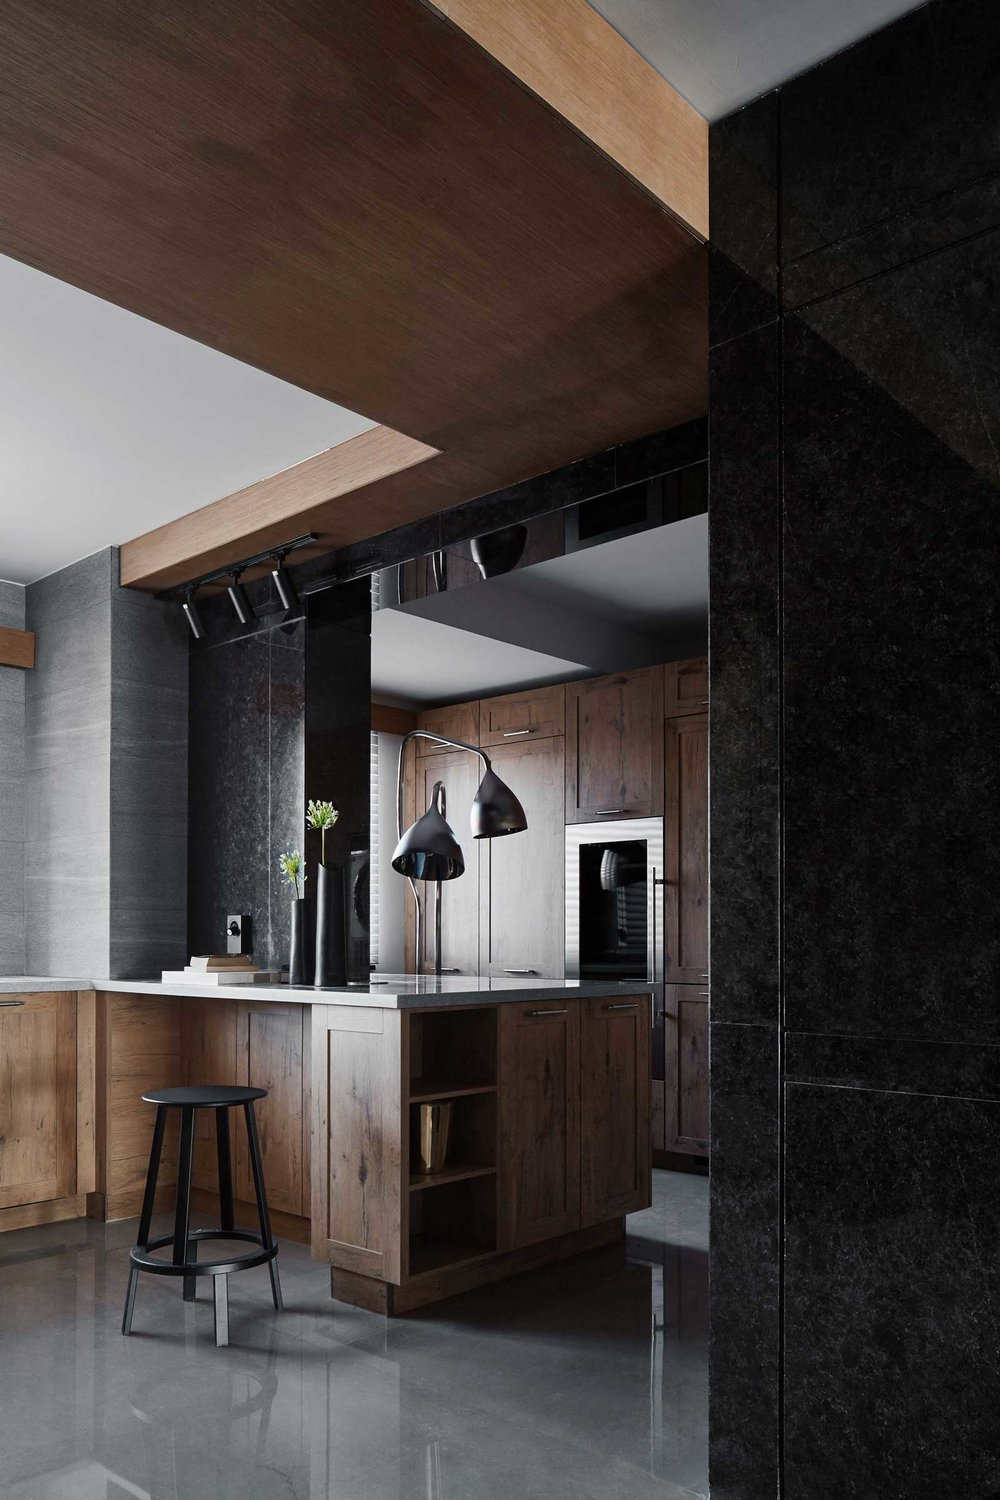 lane-house-ARCHISTRY-nolan-chao-10-kitchen.jpg